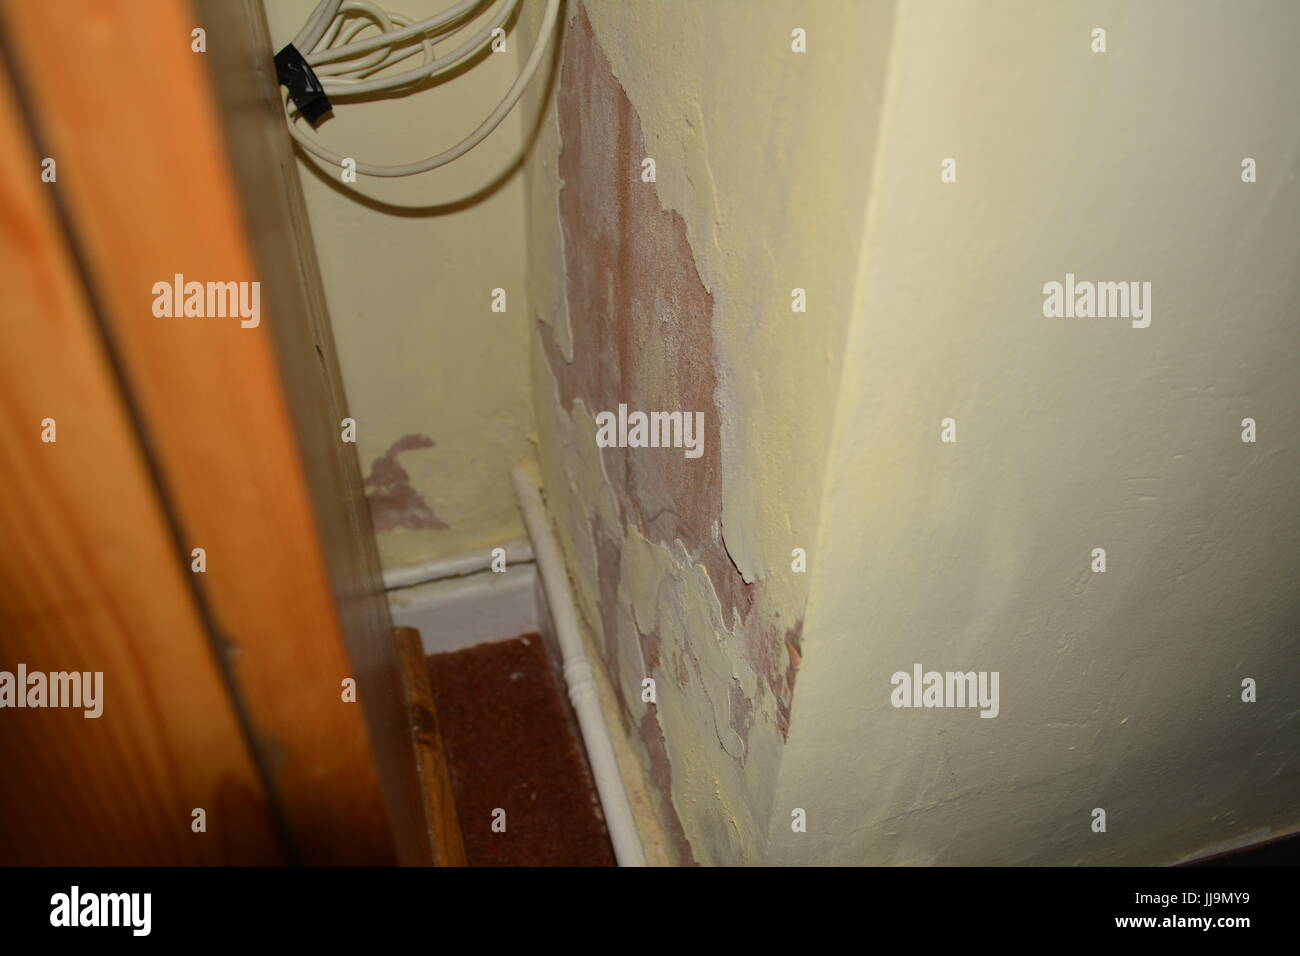 Rising damp on inside wall of old house re peeling paint poor decoration DPC DPM damp proof course membrane lack - Stock Image